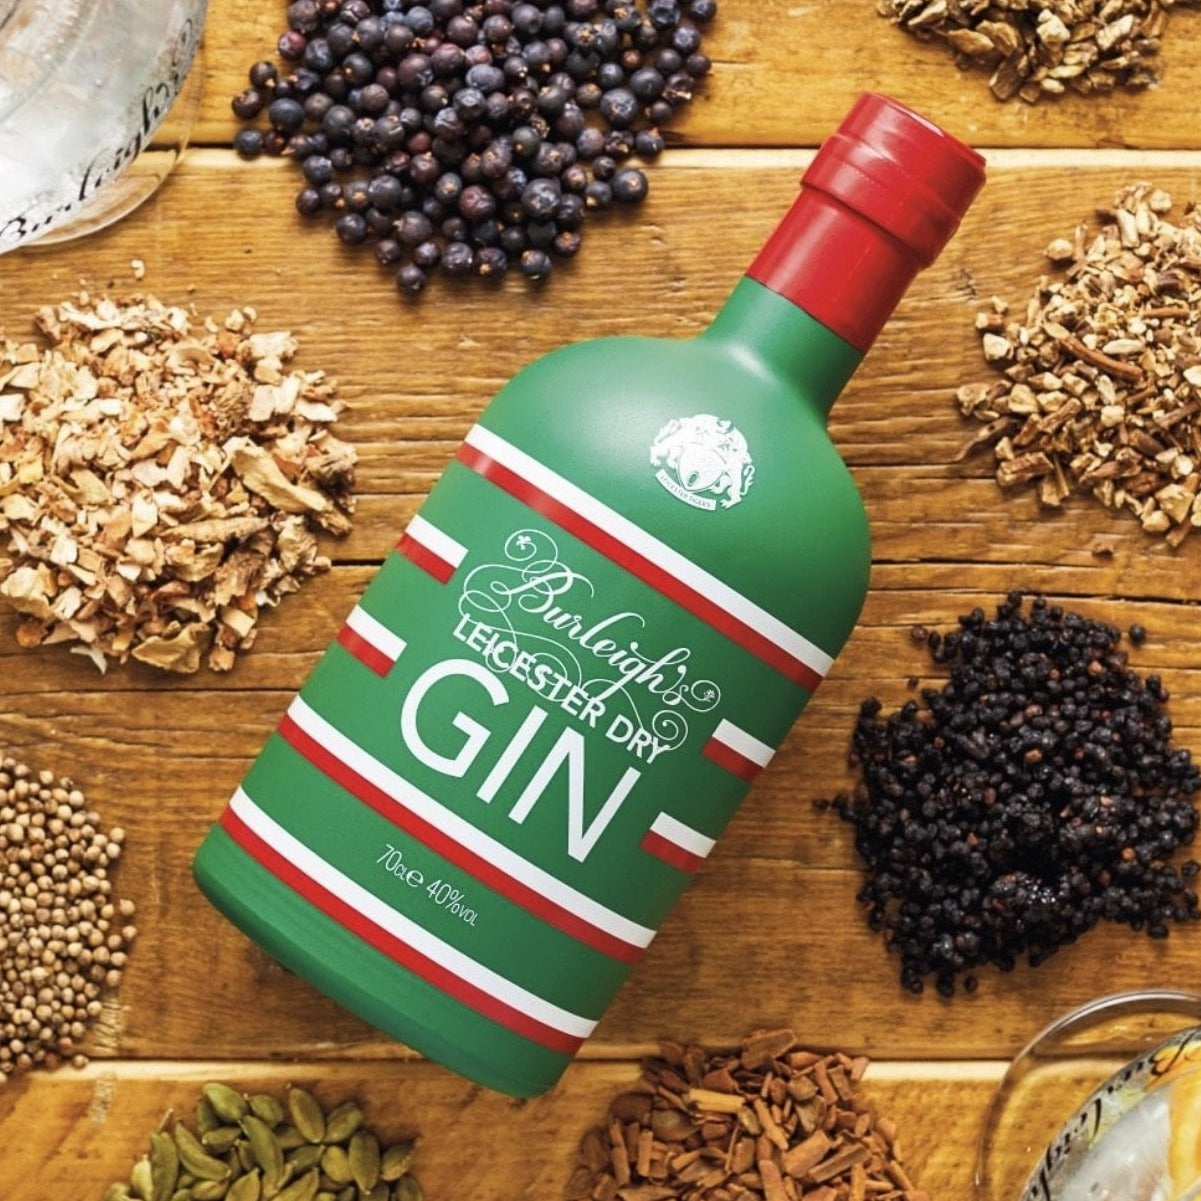 Burleigh's Leicester Tigers Dry Gin - SplitsDrinks